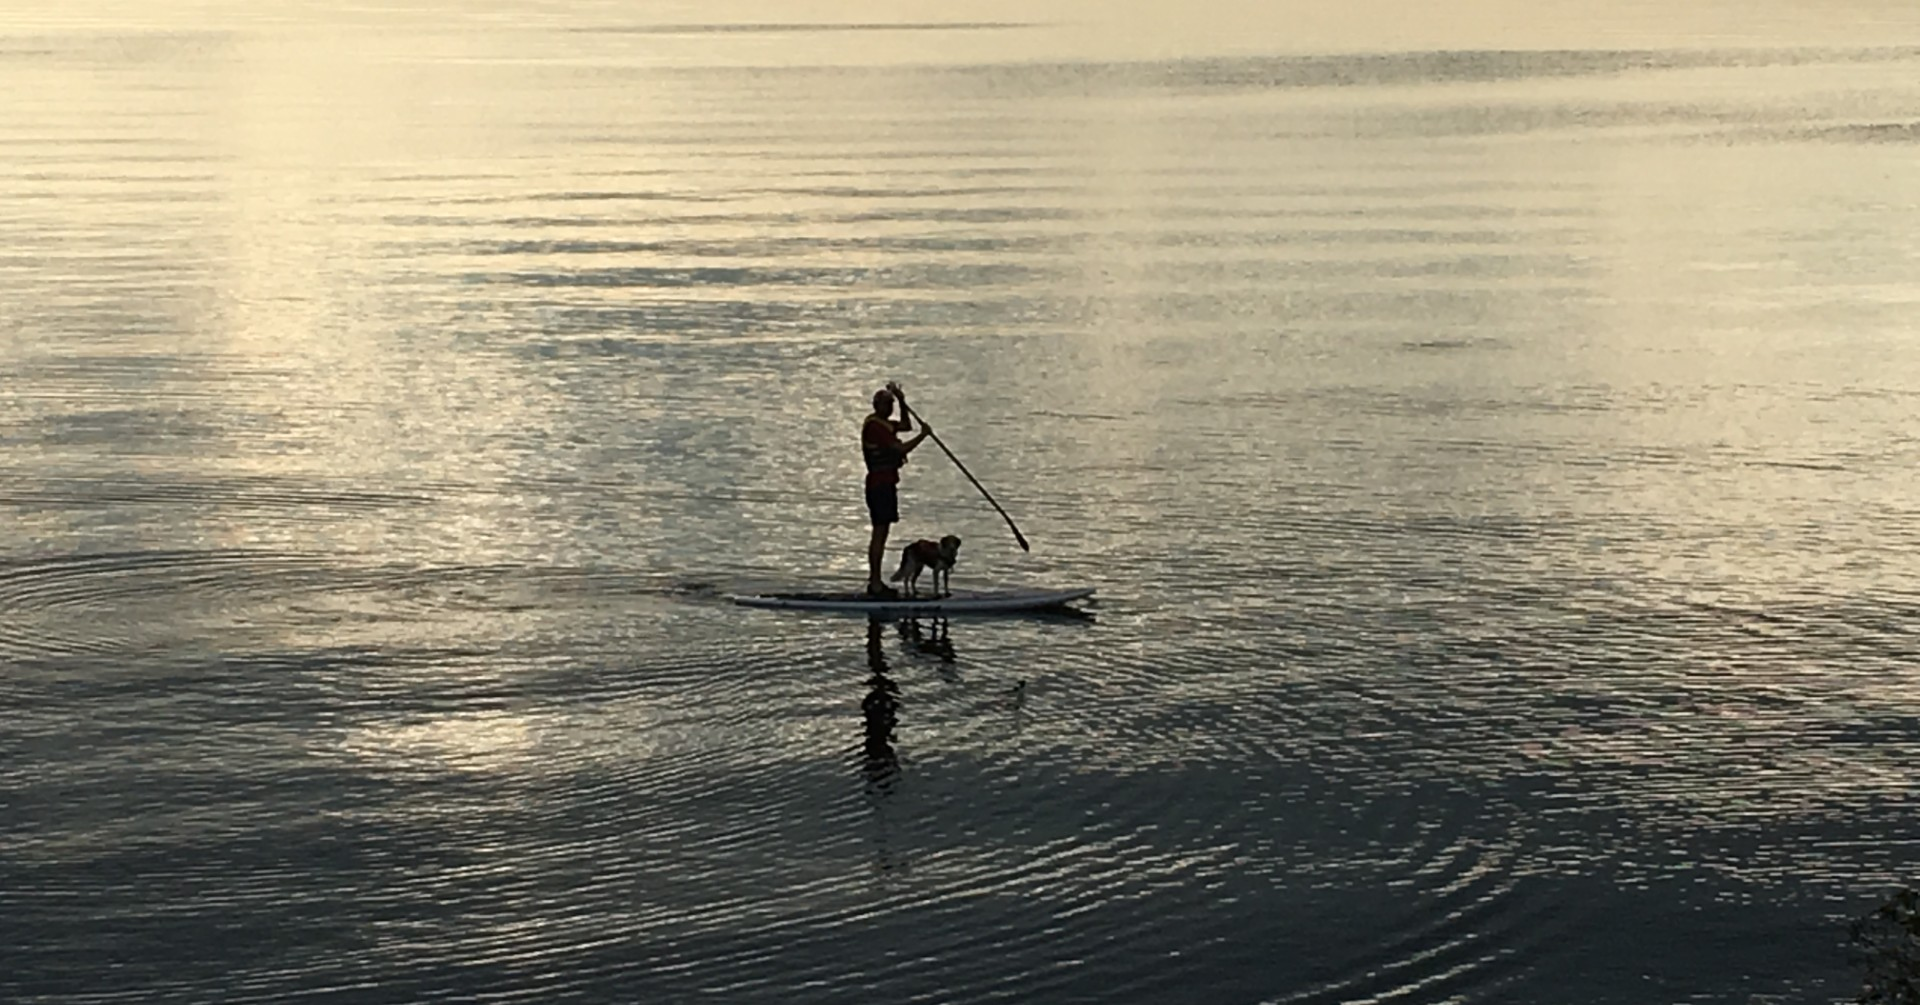 Dr. Joel Wood on a paddleboard